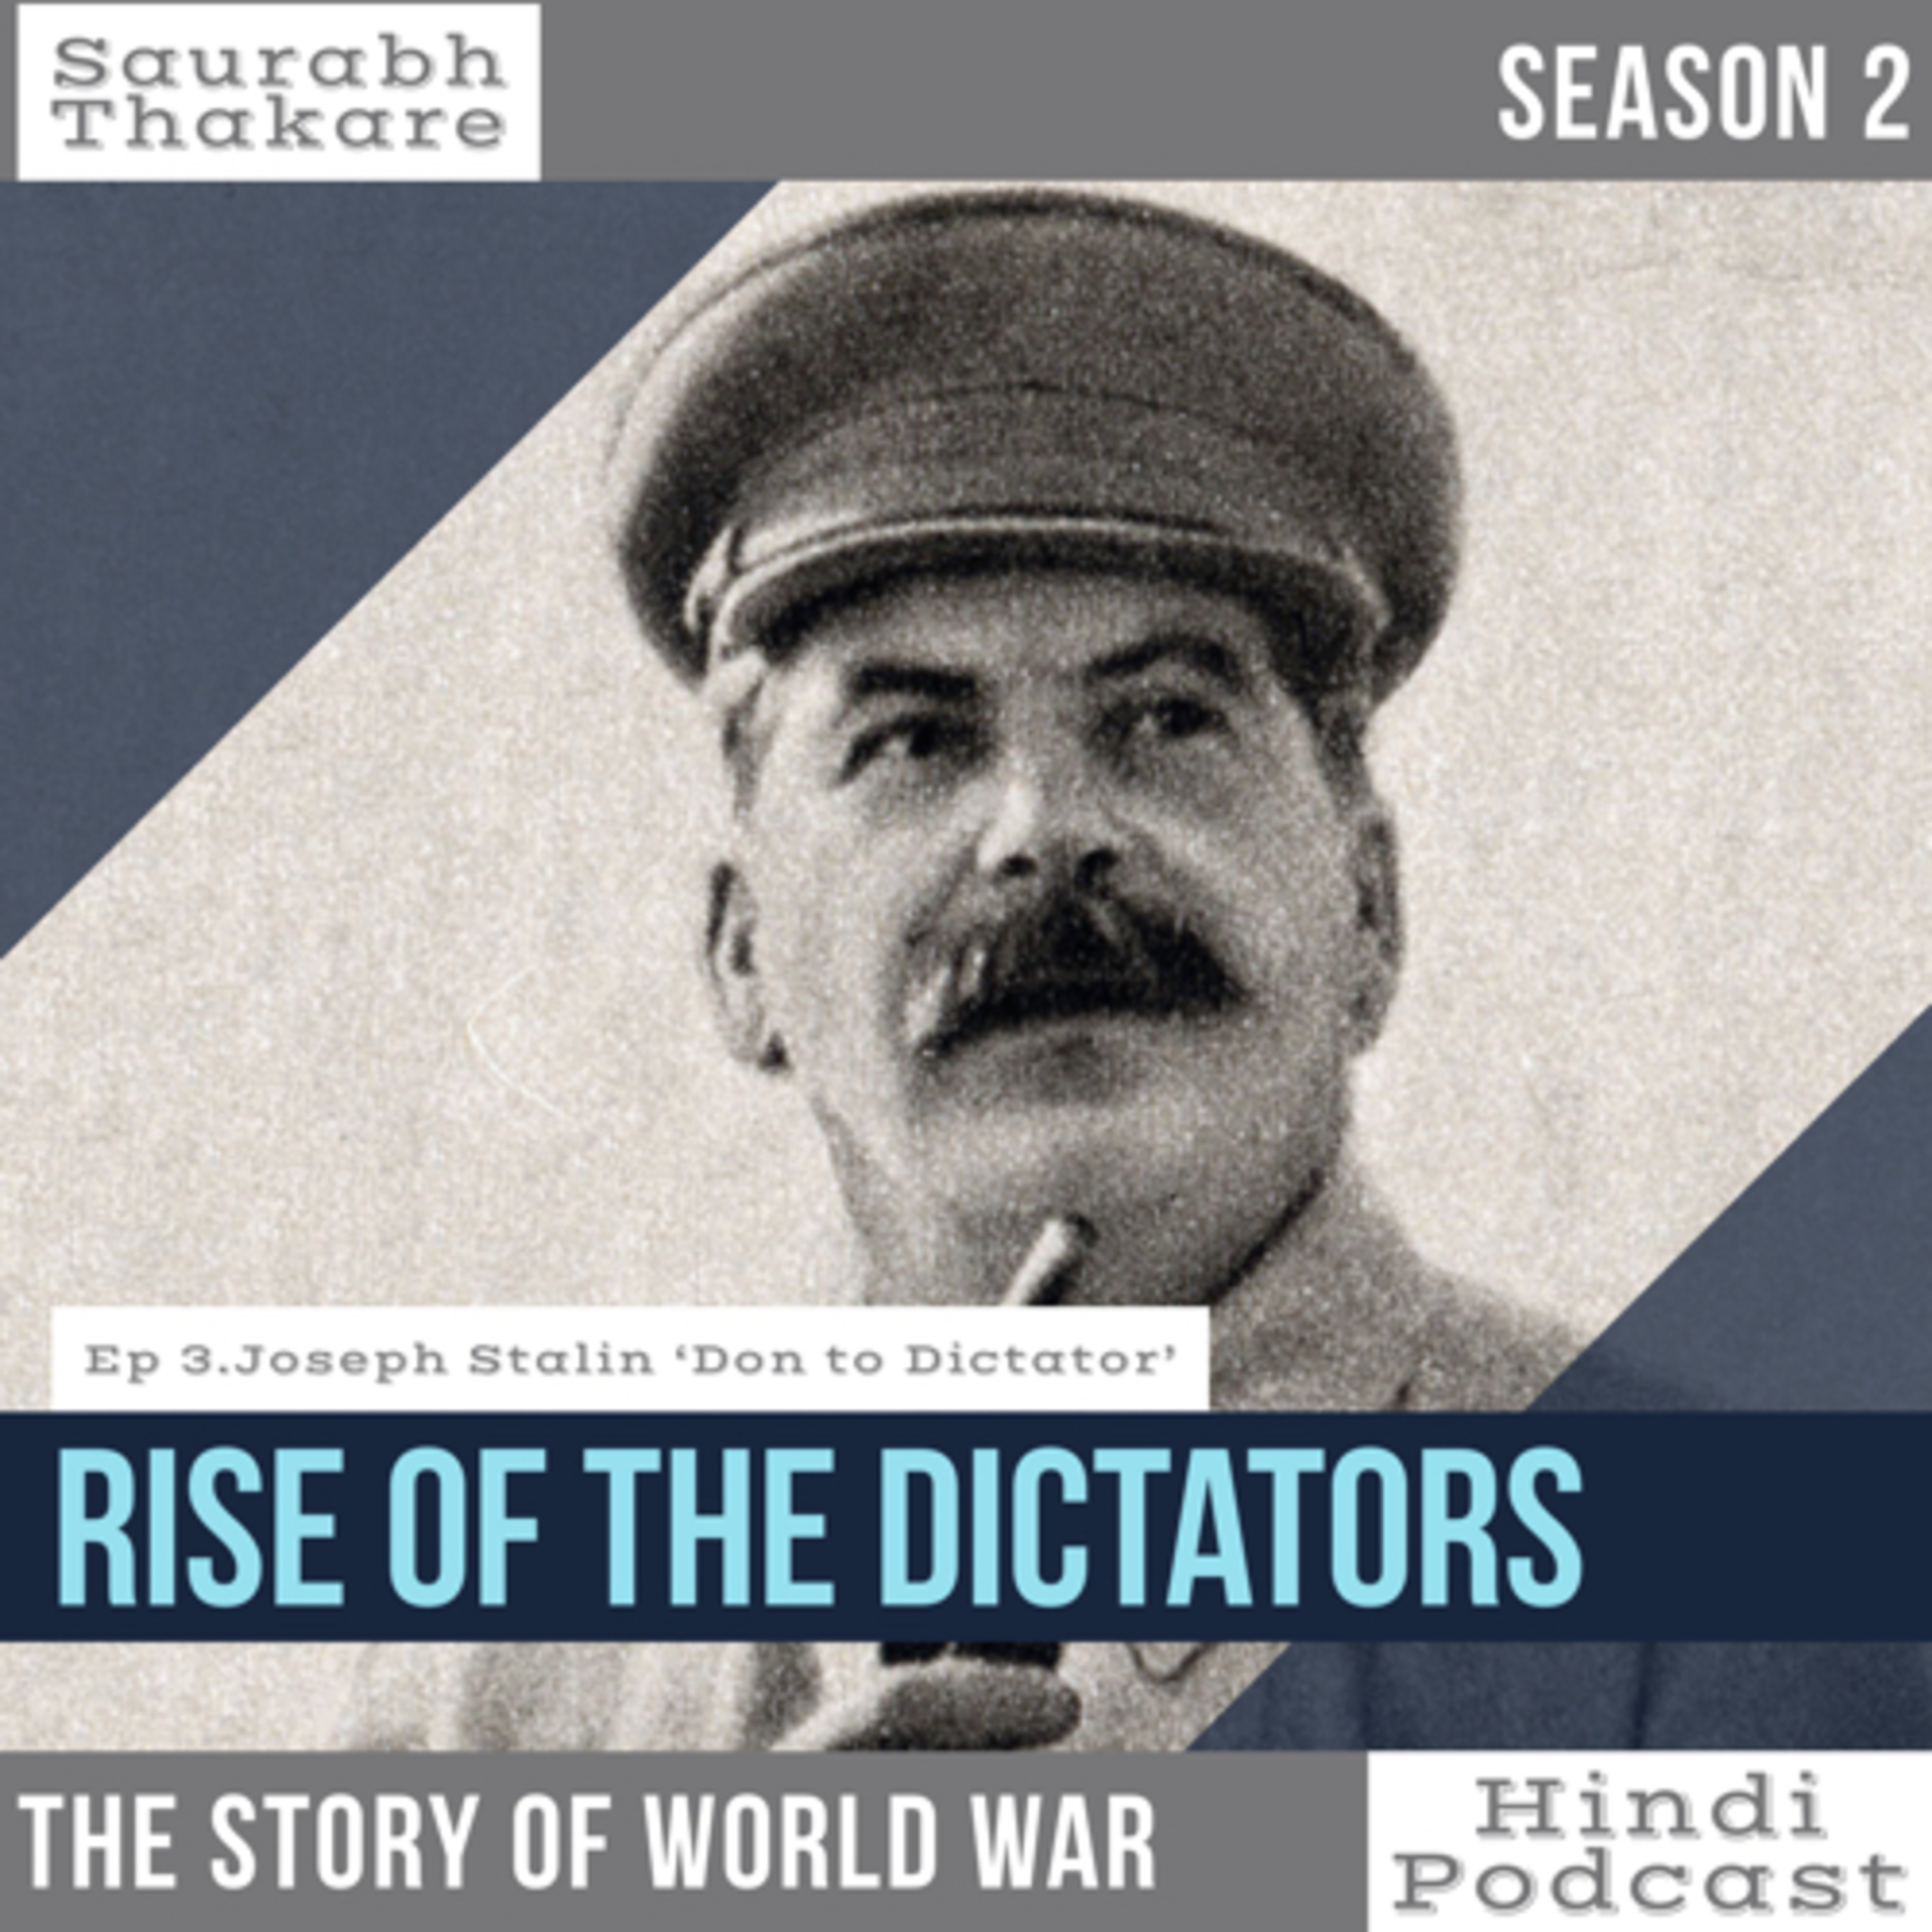 #40 RISE OF THE DICTATORS |Ep 19. Joseph Stalin (Part 1)